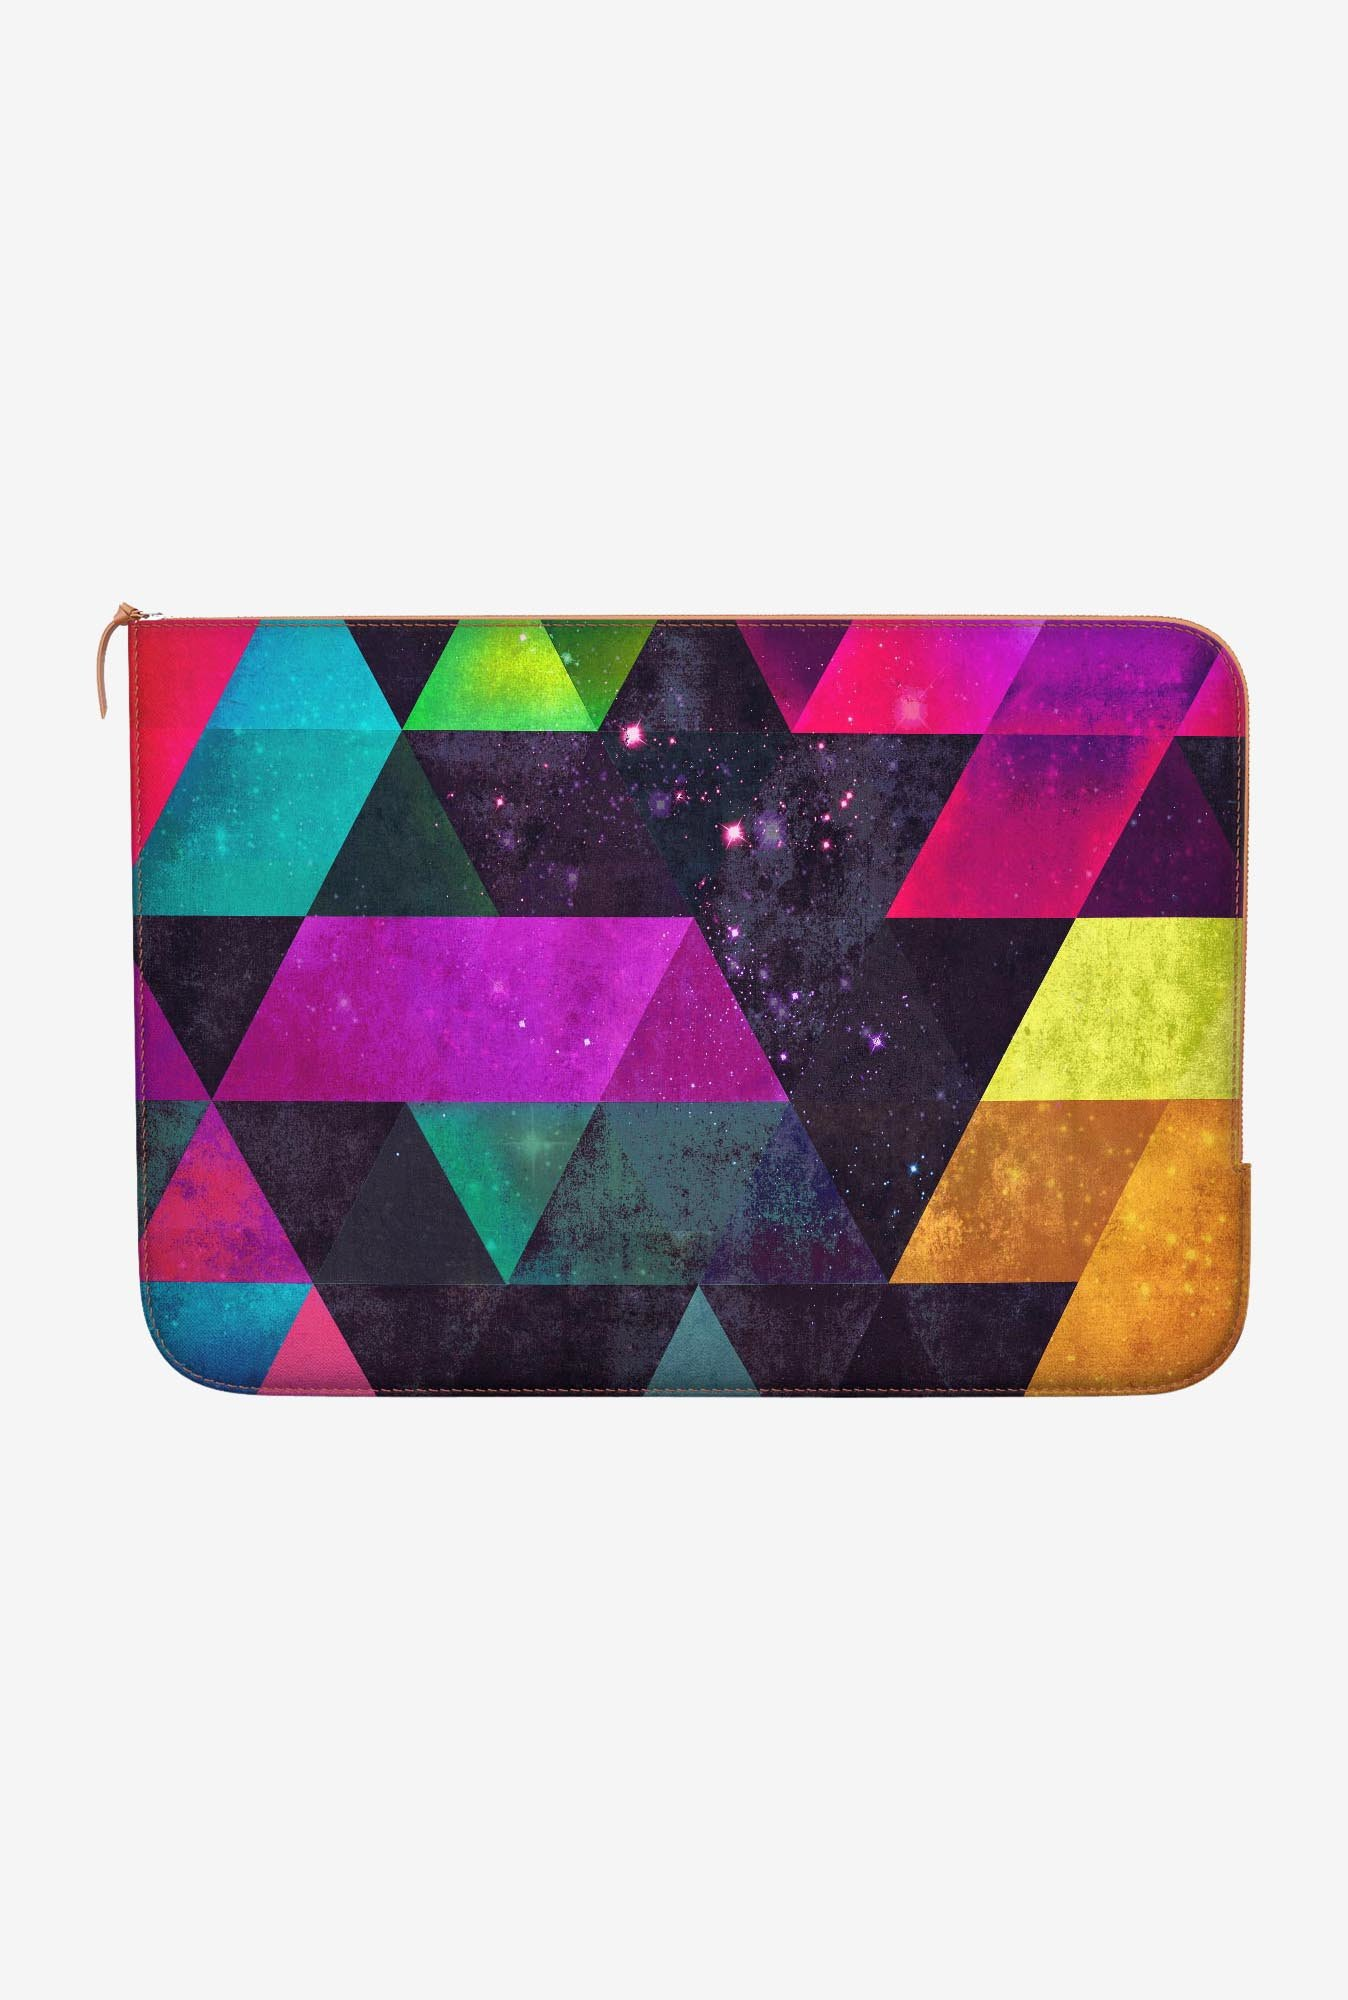 DailyObjects Ayyty Xtyl Hrxtl Macbook Pro 15 Zippered Sleeve